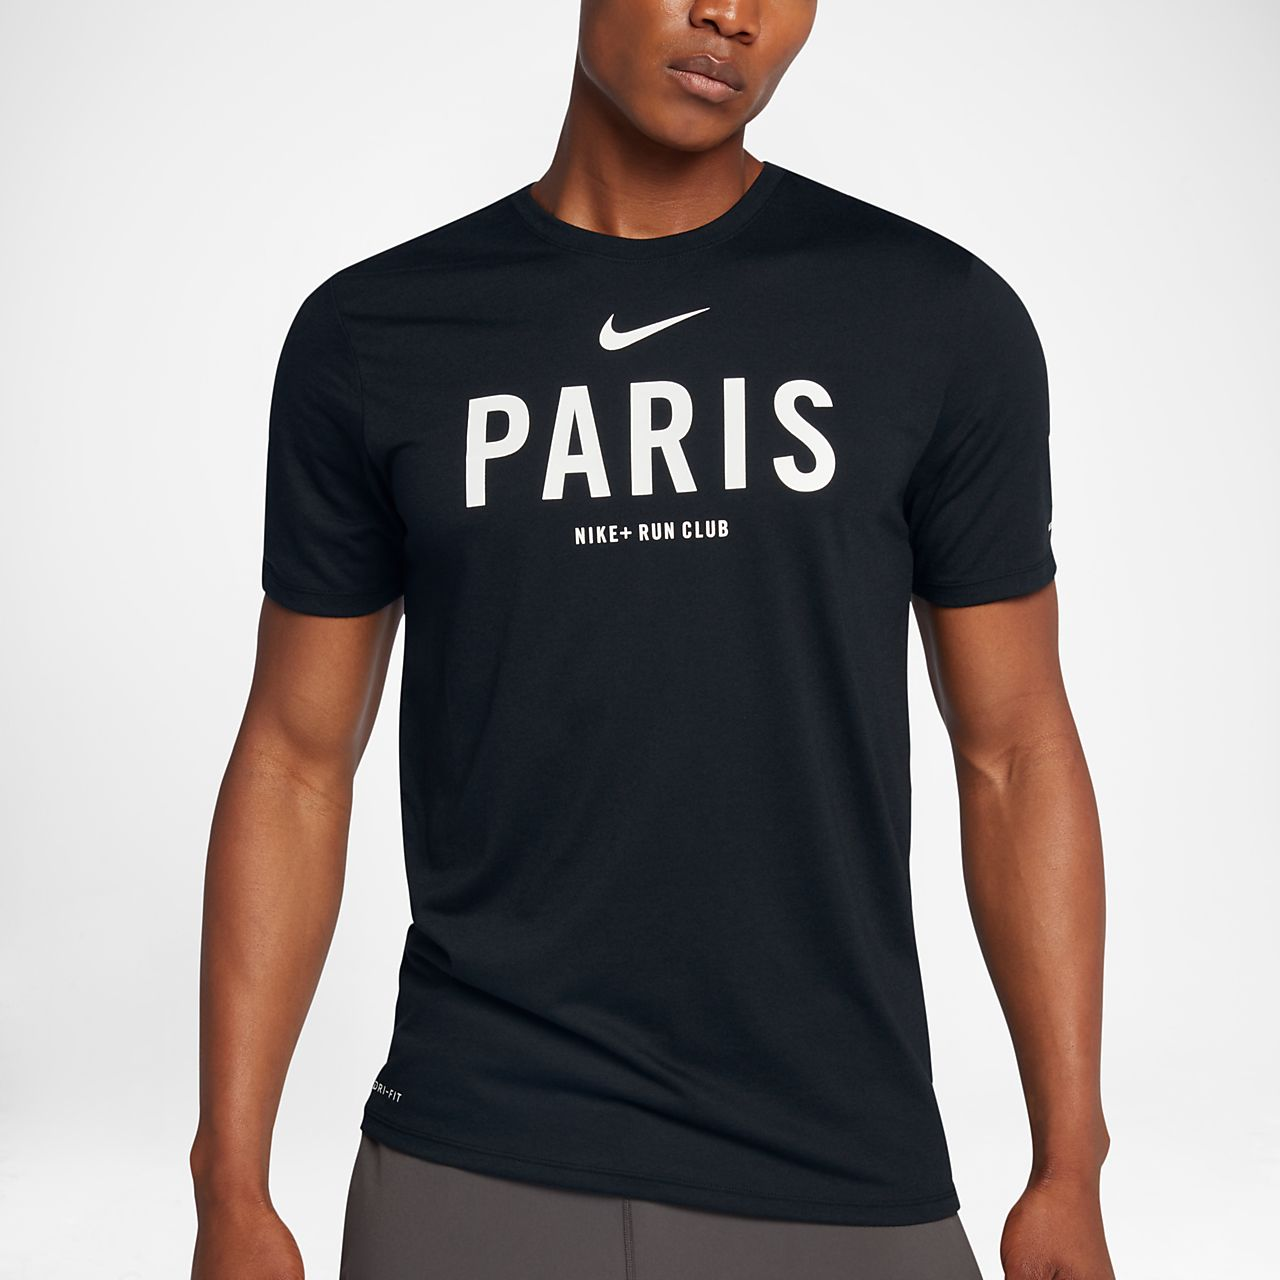 ... Nike Dri-FIT Run Club (Paris) Men's T-Shirt